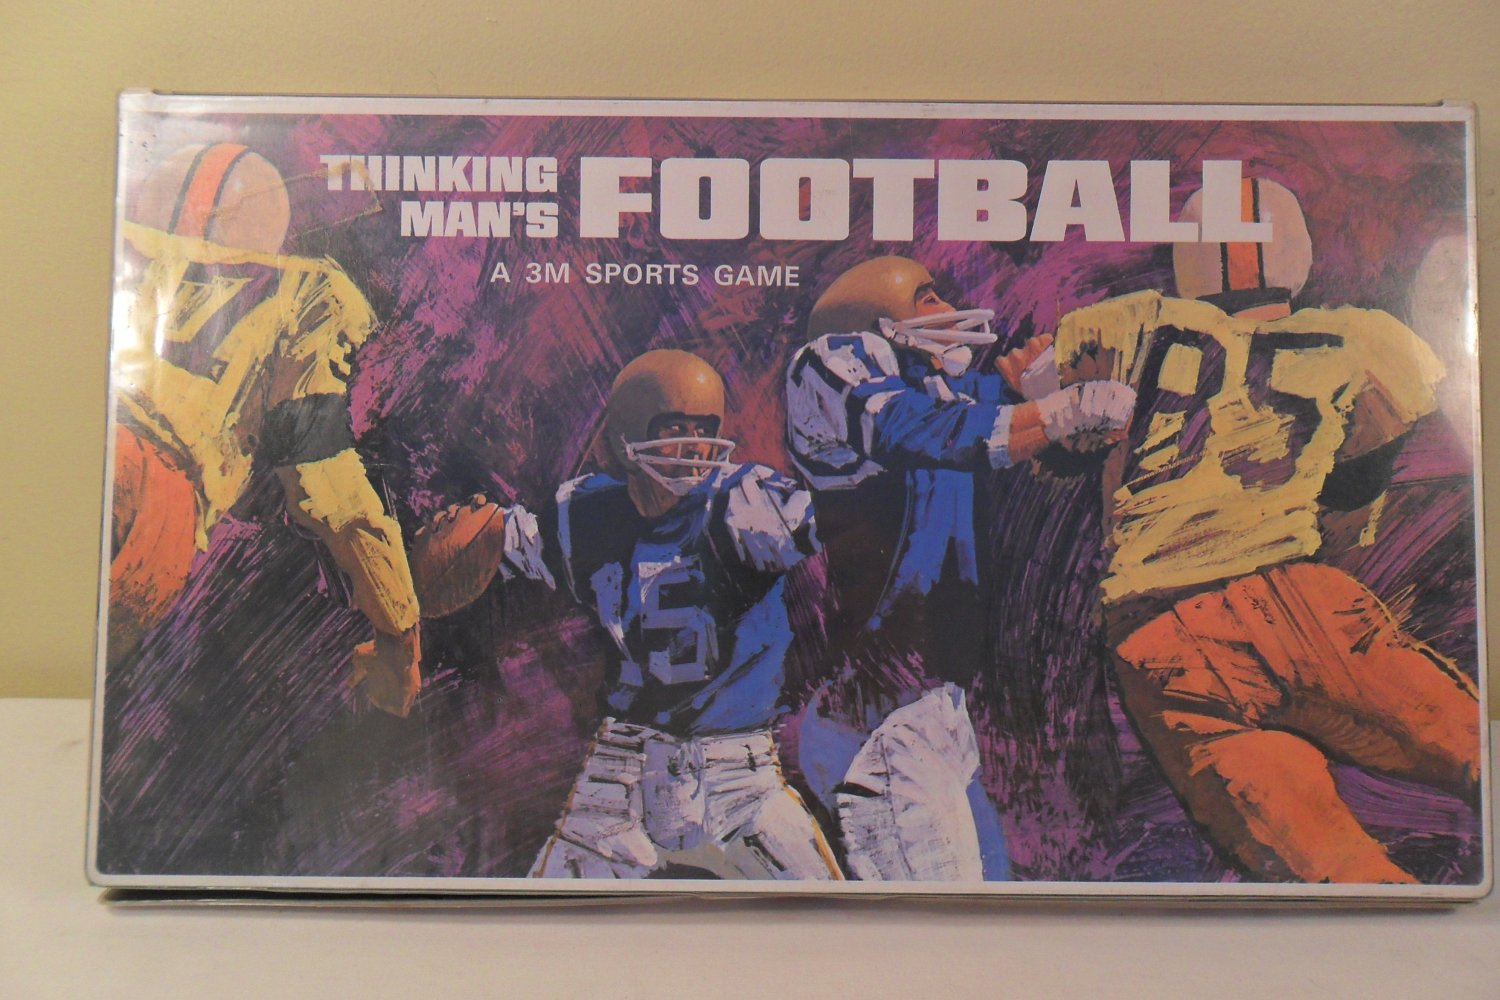 Vintage 3M Thinking Mans Football Game 1969 Complete